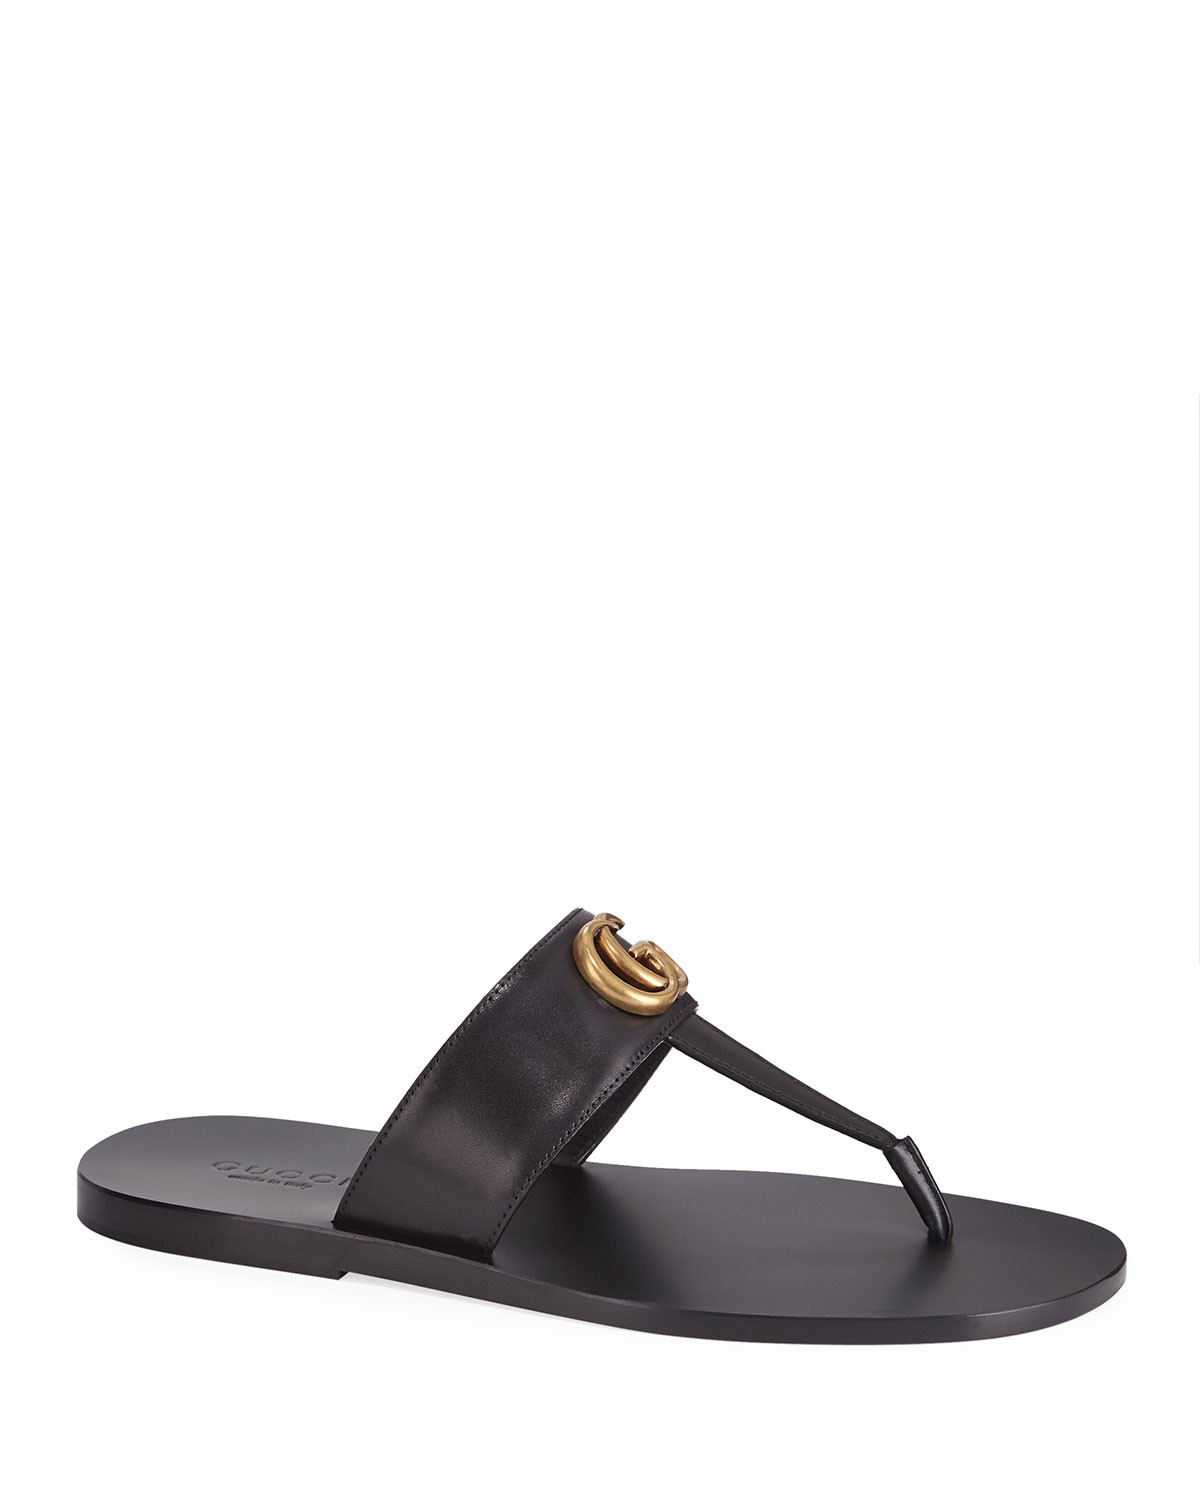 GG-Stud Leather Thong Sandals